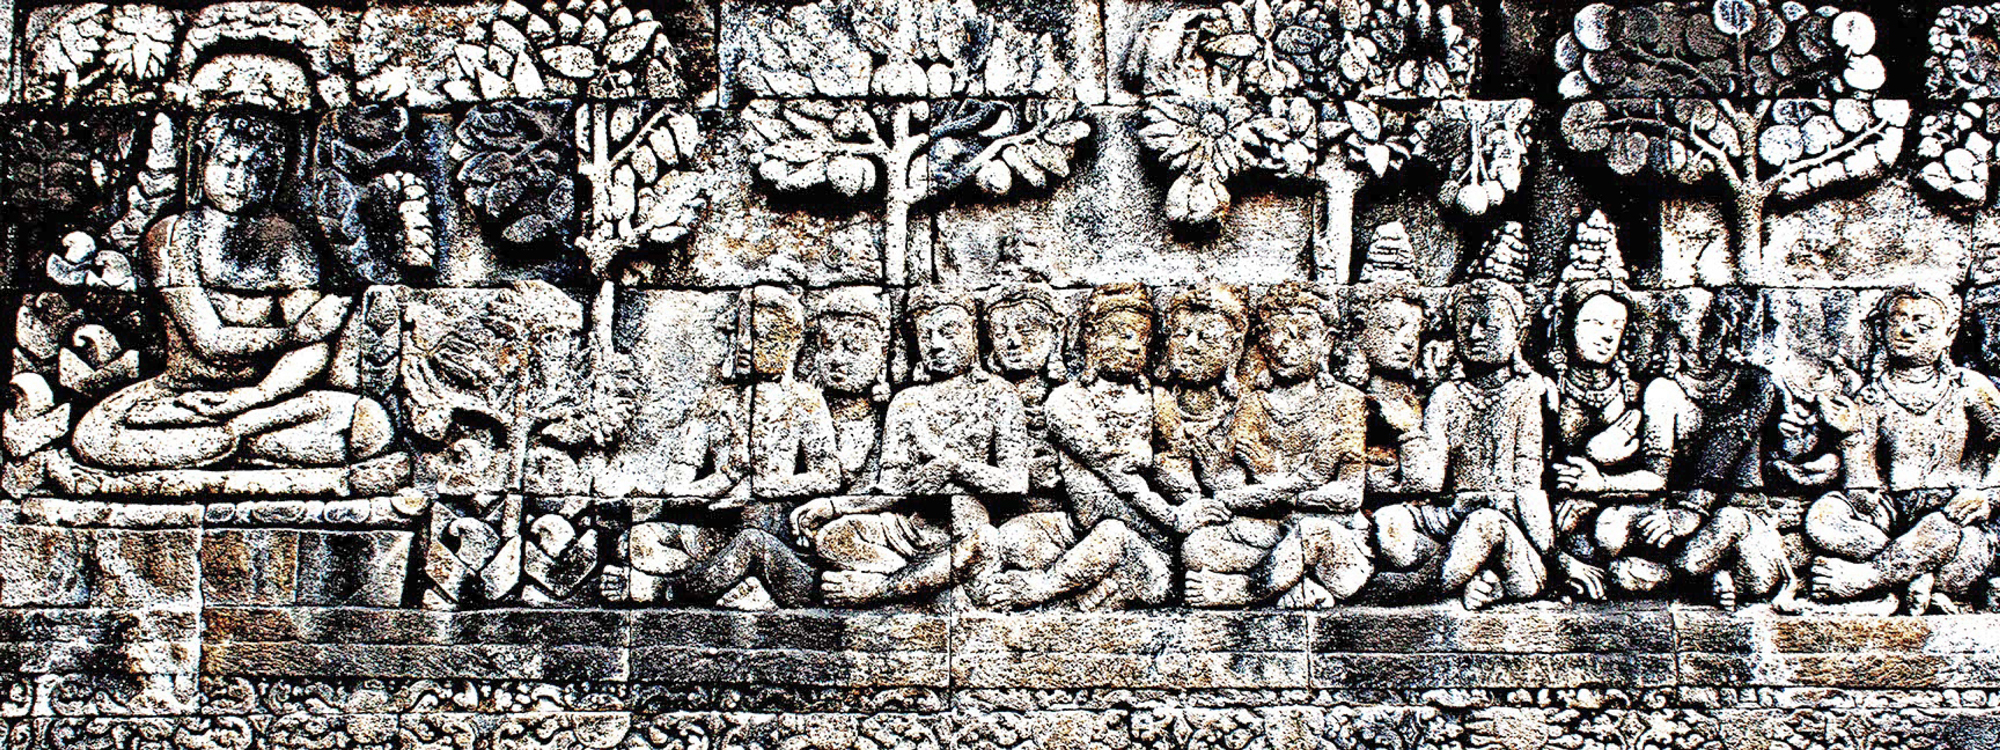 Borobudur-&-Diamond-Cutter-21